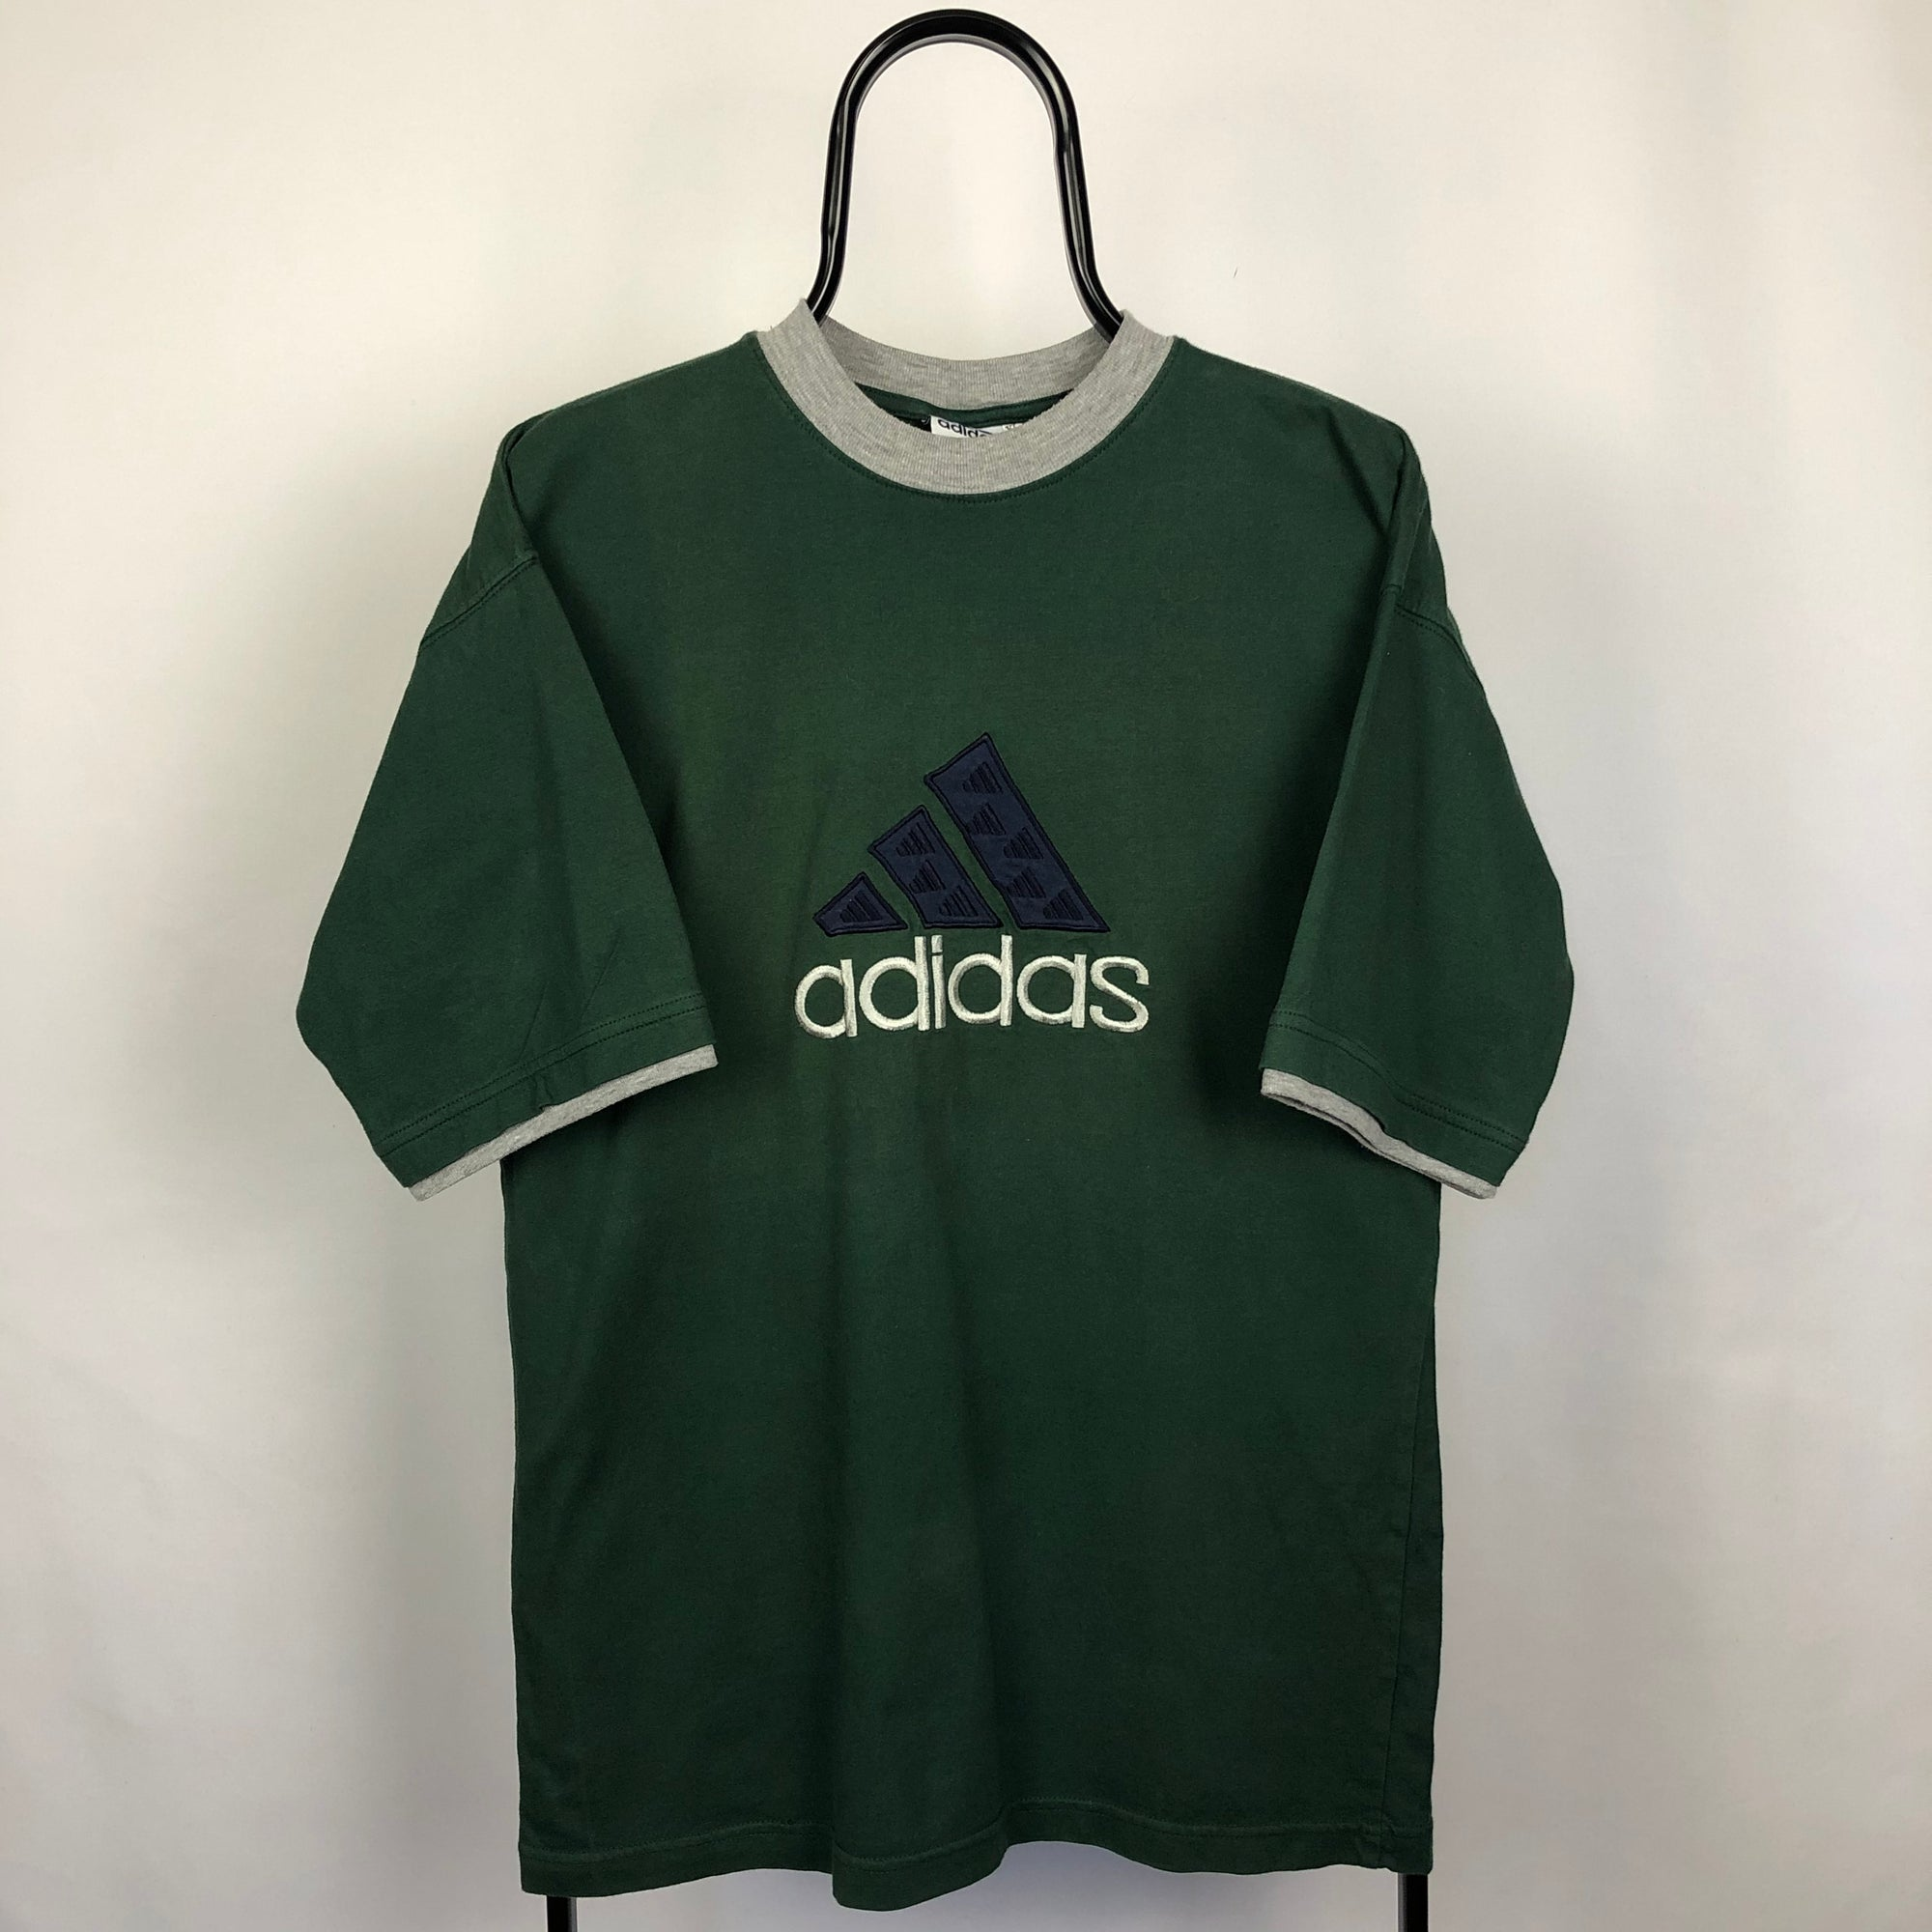 Vintage Adidas Spellout Tee in Green - Men's Large/Women's XL